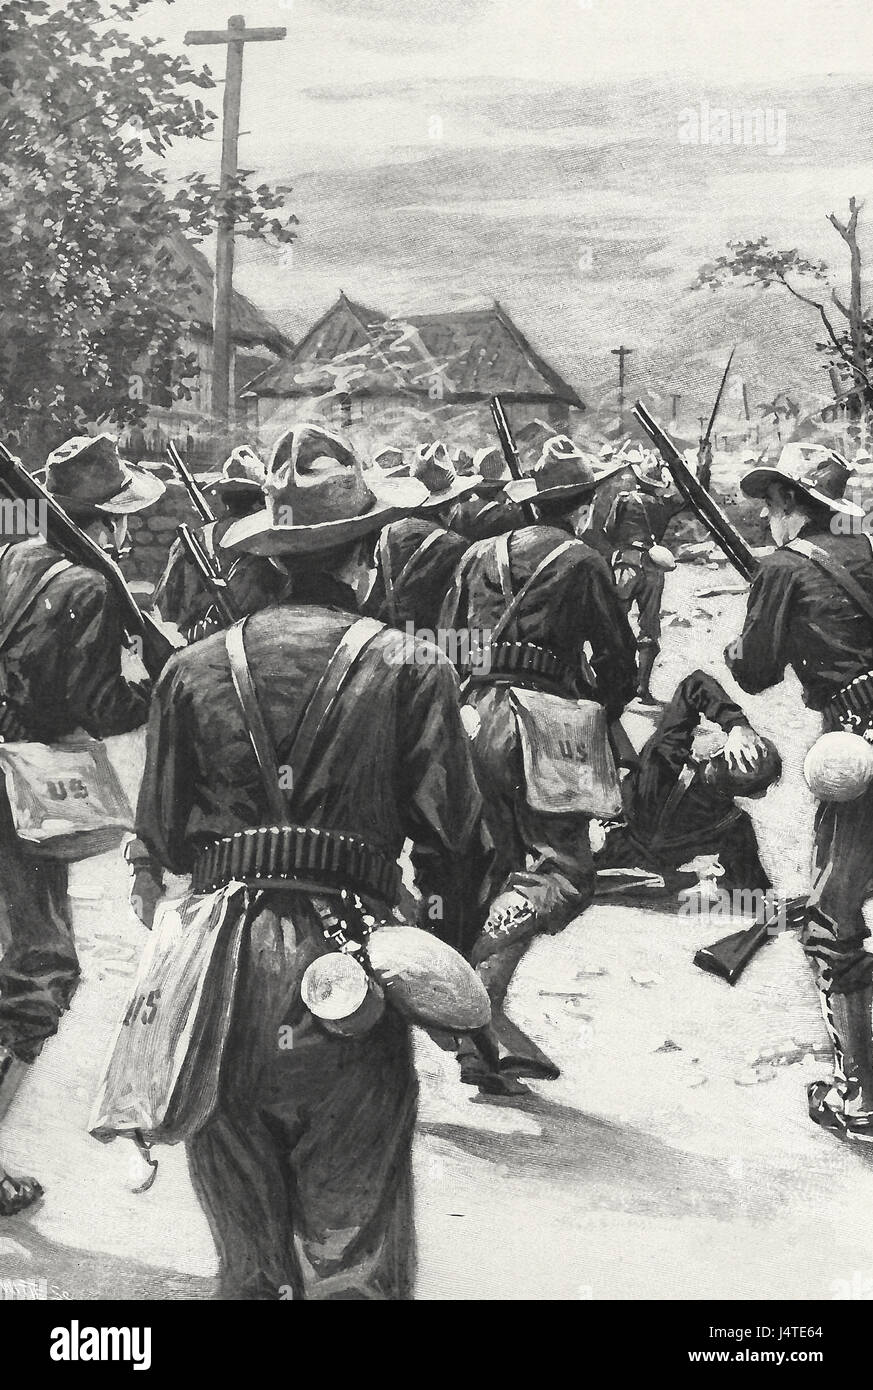 Resistance from the houses in Malate - Volunteers from the First California in conflict with the Resistance - 1899 - Stock Image